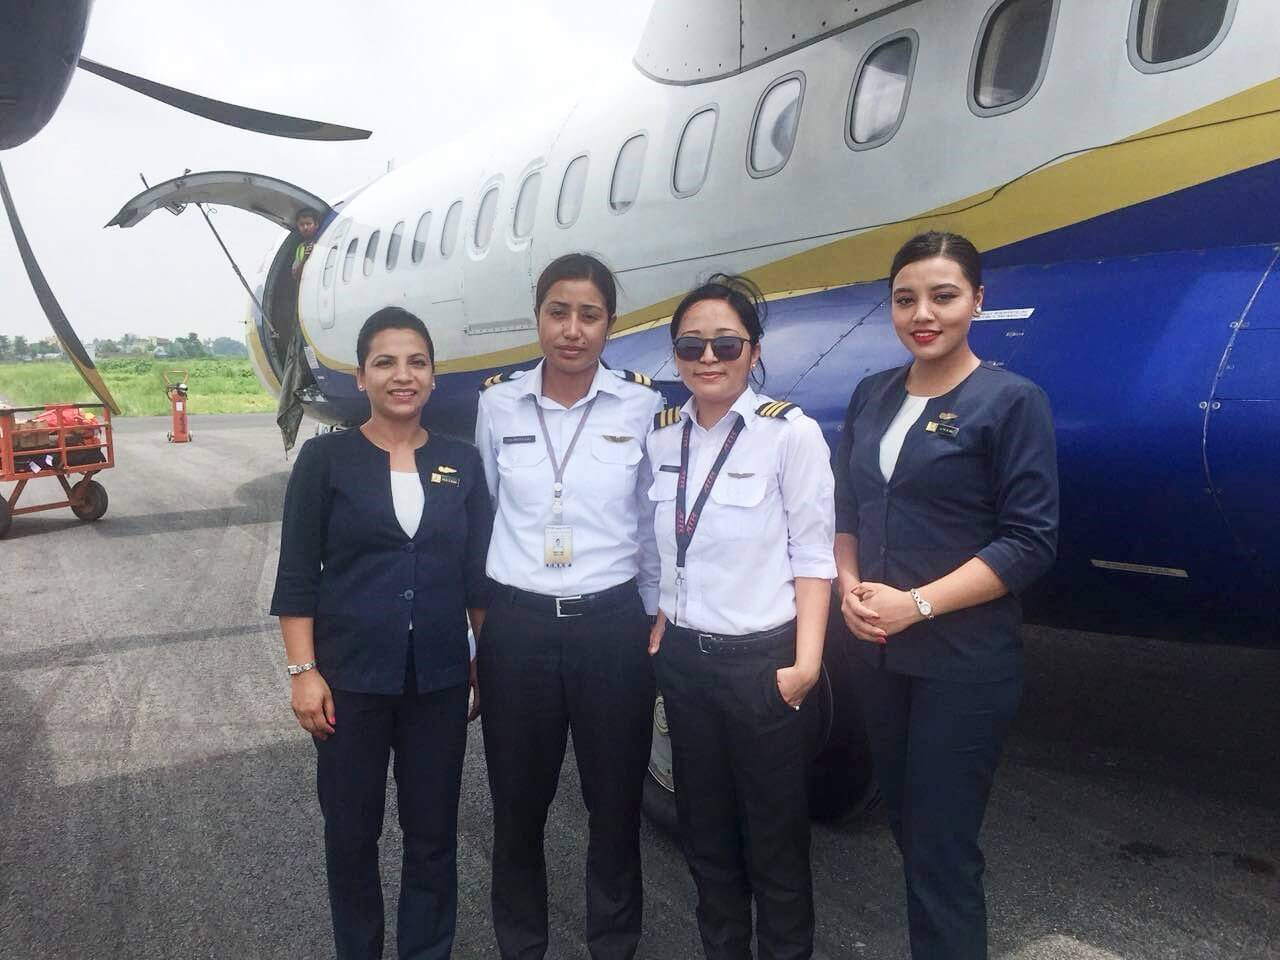 All female flight crew